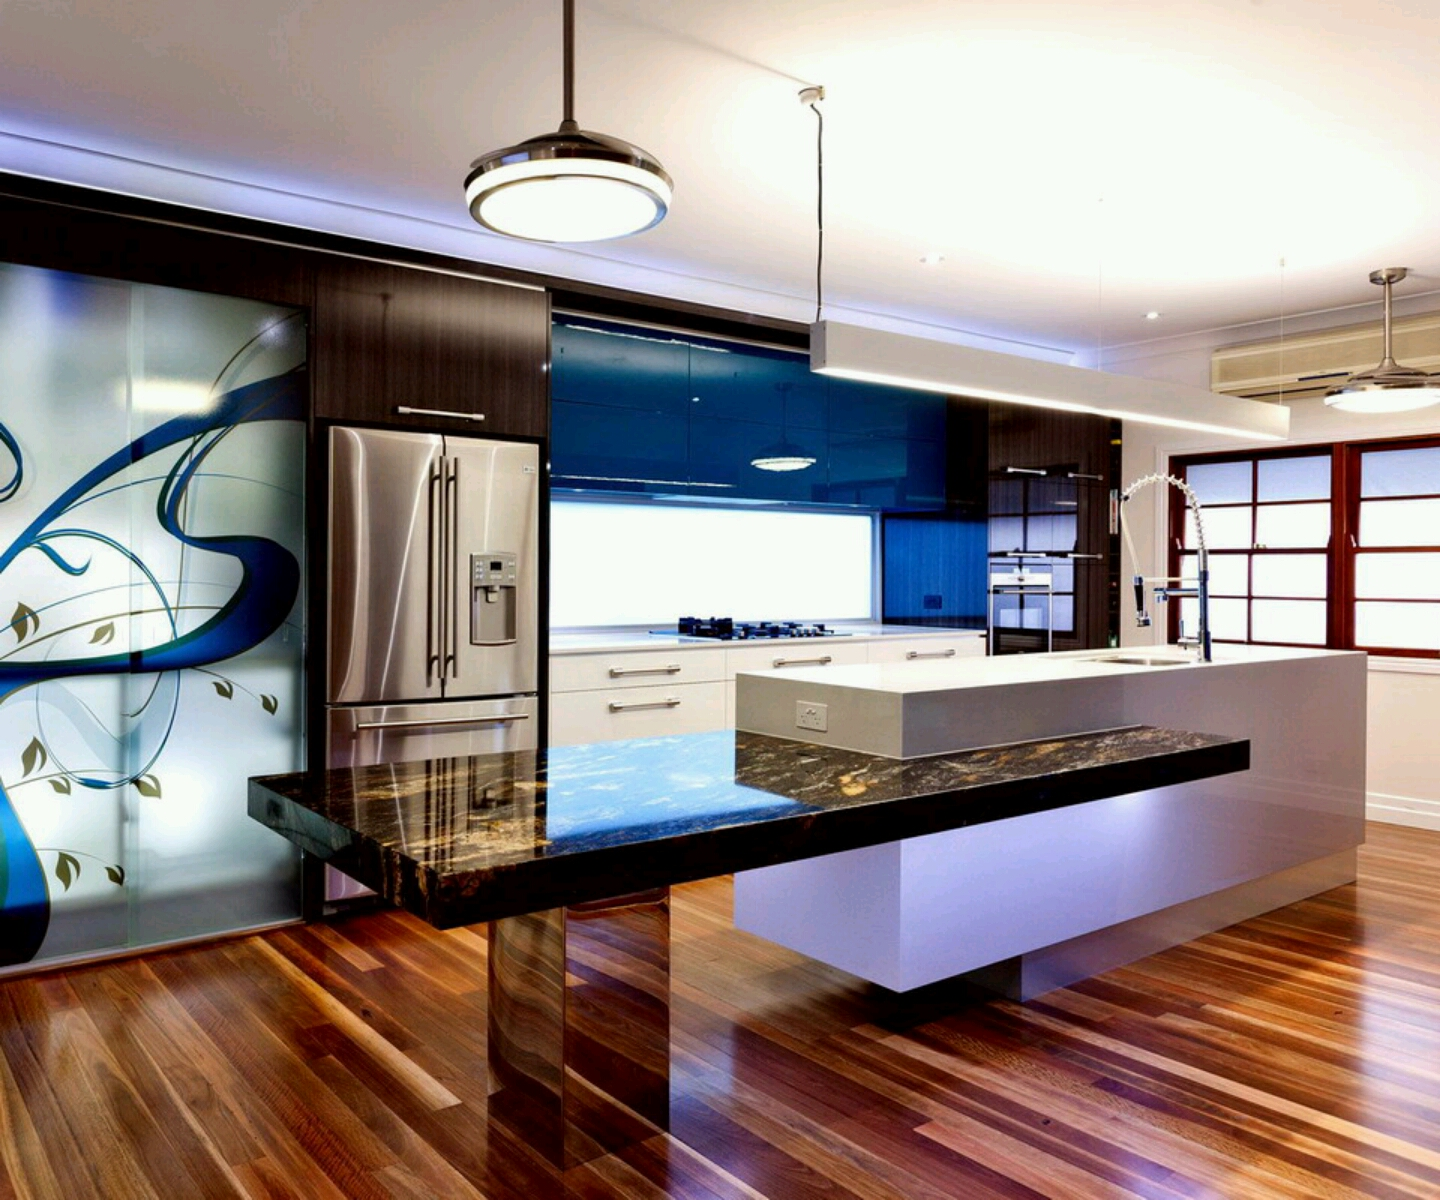 Ultra modern kitchen designs ideas new home designs Modern houses interior kitchen